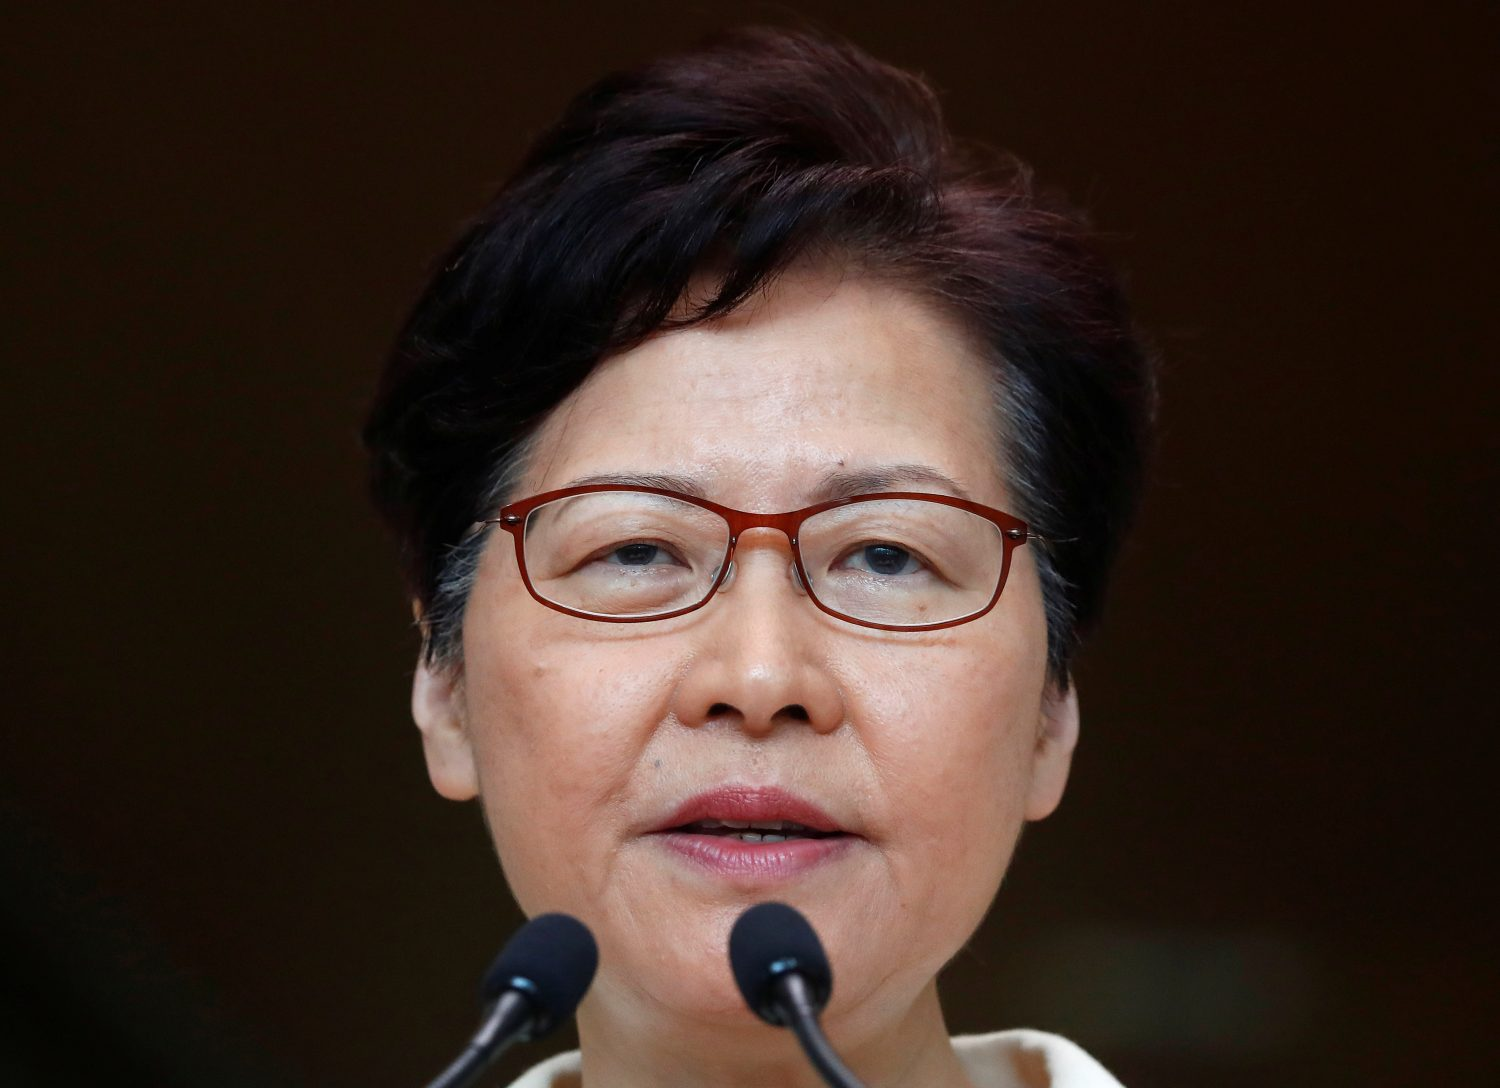 FILE PHOTO: Hong Kong's Chief Executive Carrie Lam holds a news conference in Hong Kong, China, September 3, 2019. REUTERS/Kai Pfaffenbach